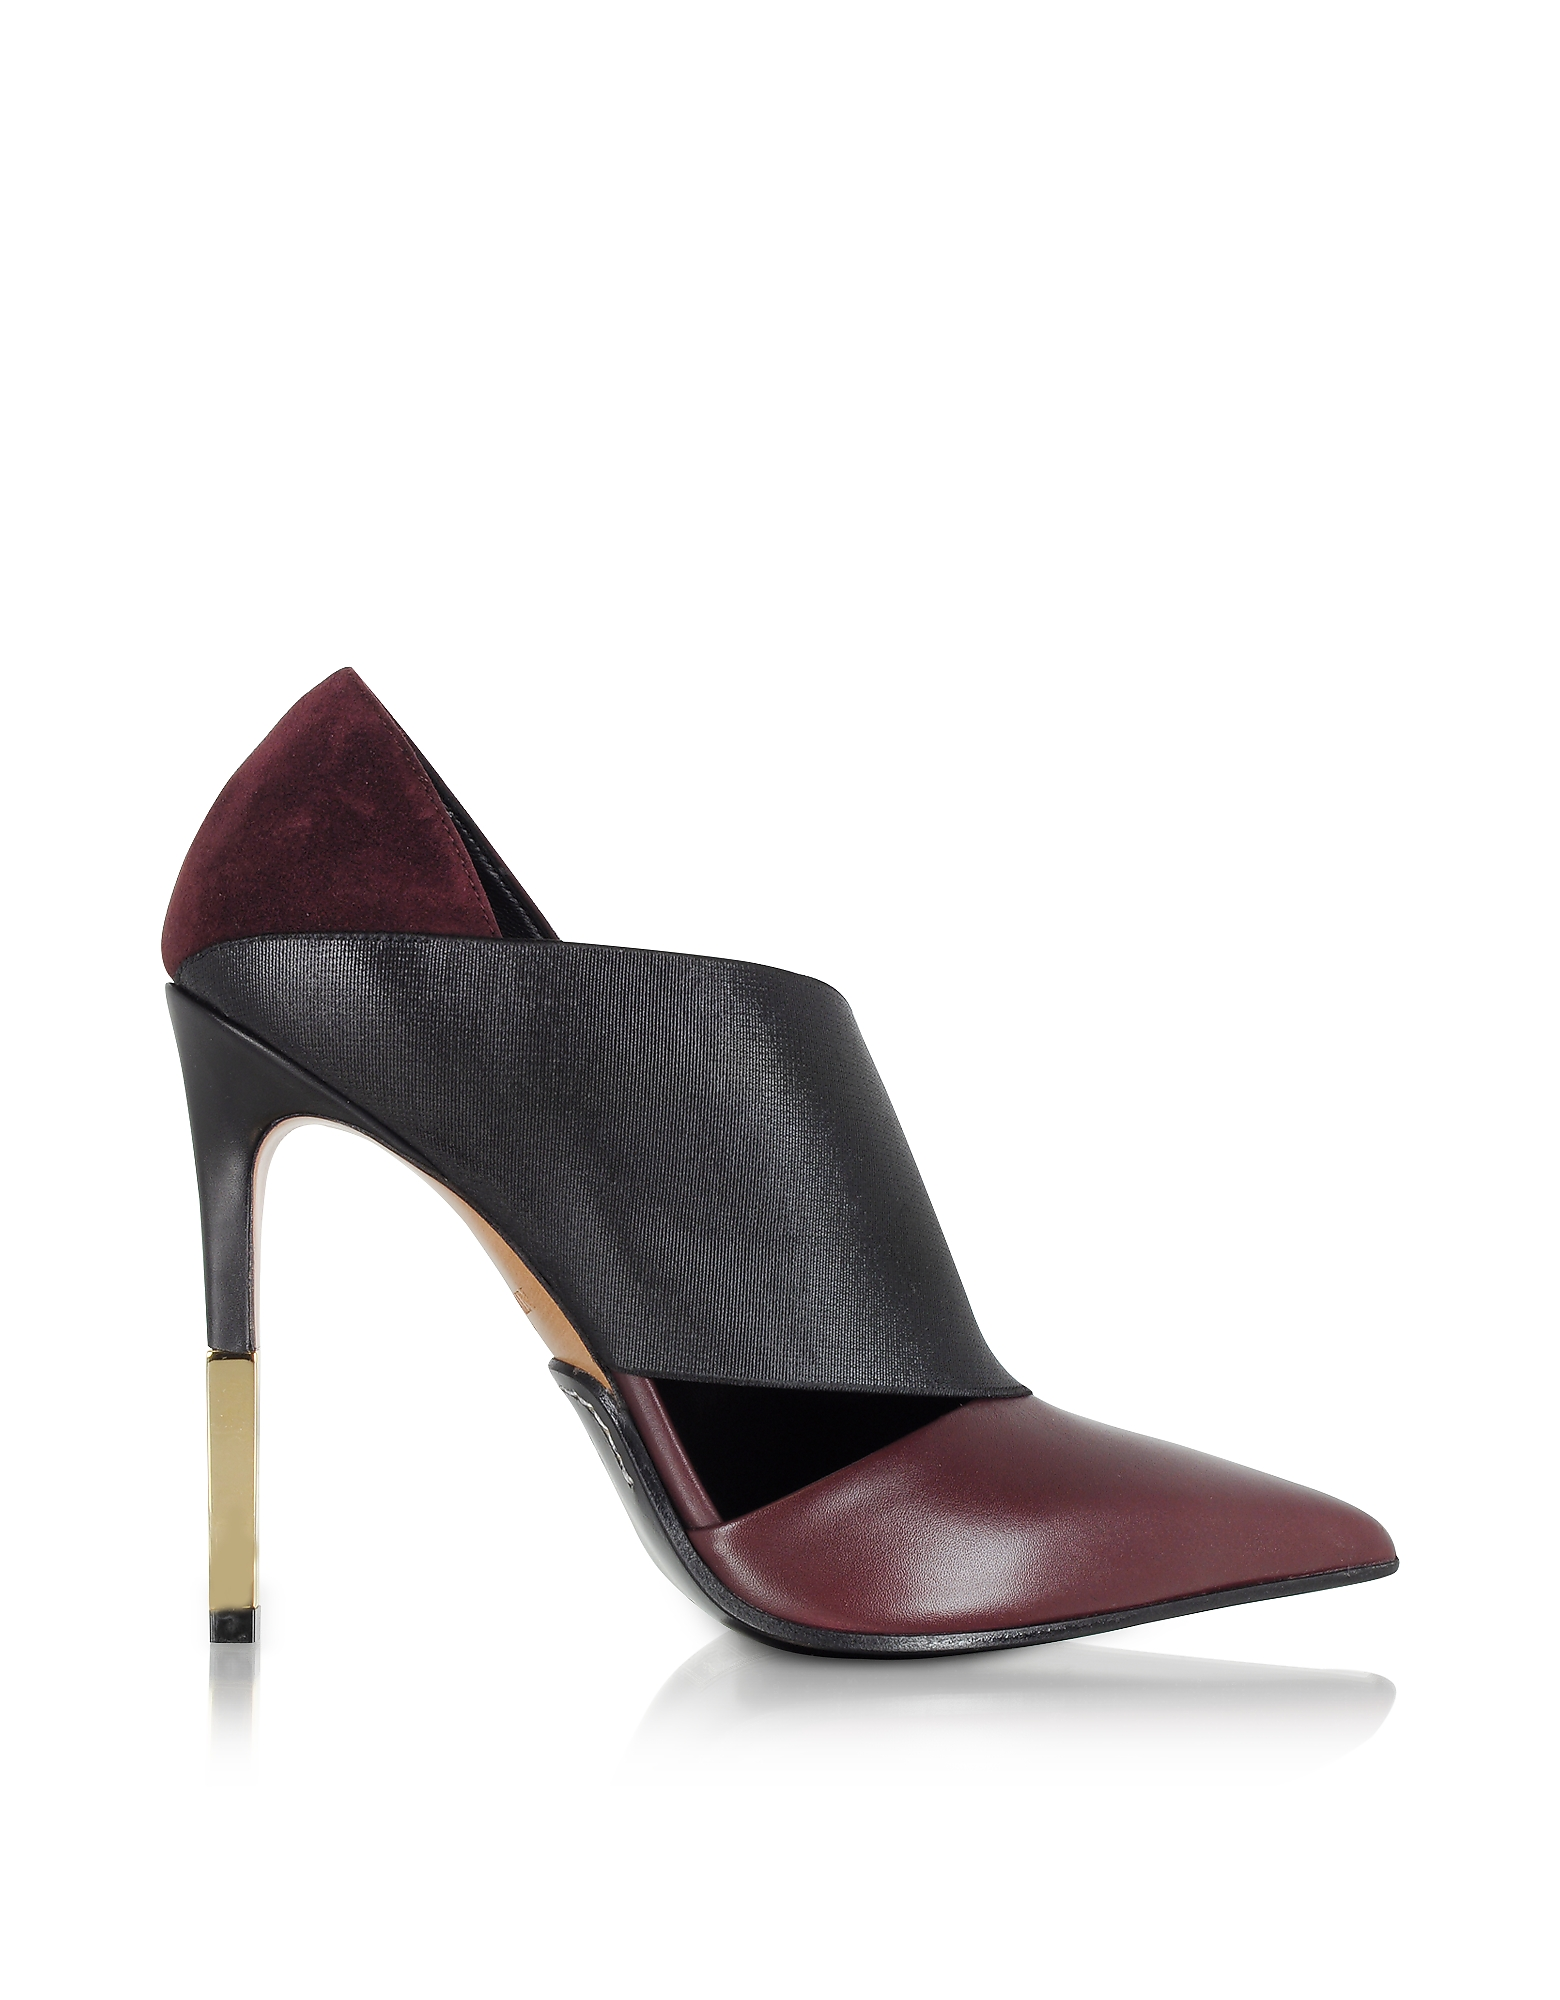 Balmain Shoes, Audrey Burgundy Leather Pump